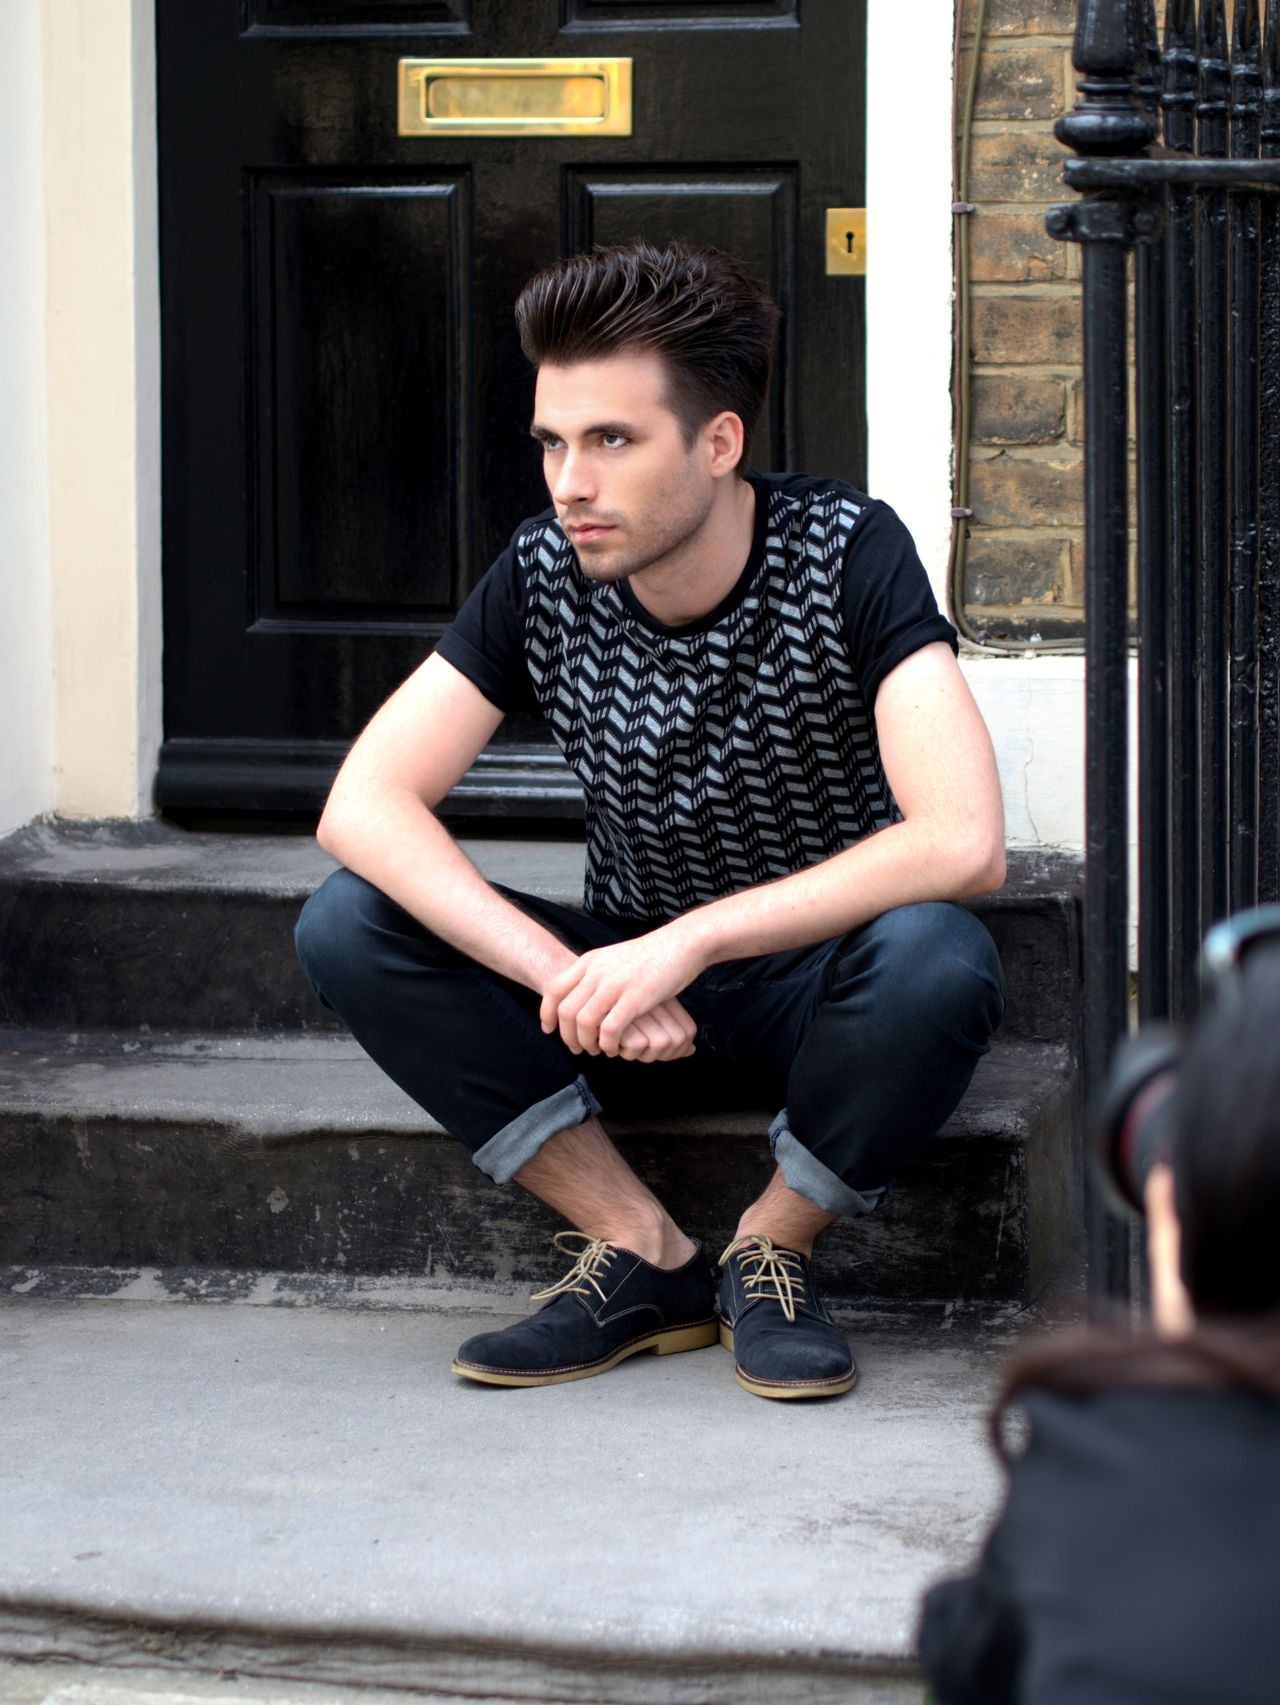 In the firing line Being Shot Black Door Background Casual Clothing City Street Letterbox Lifestyles LONDON❤ Male Model Shot By A Canon Sitting Sitting Outside Young Adult